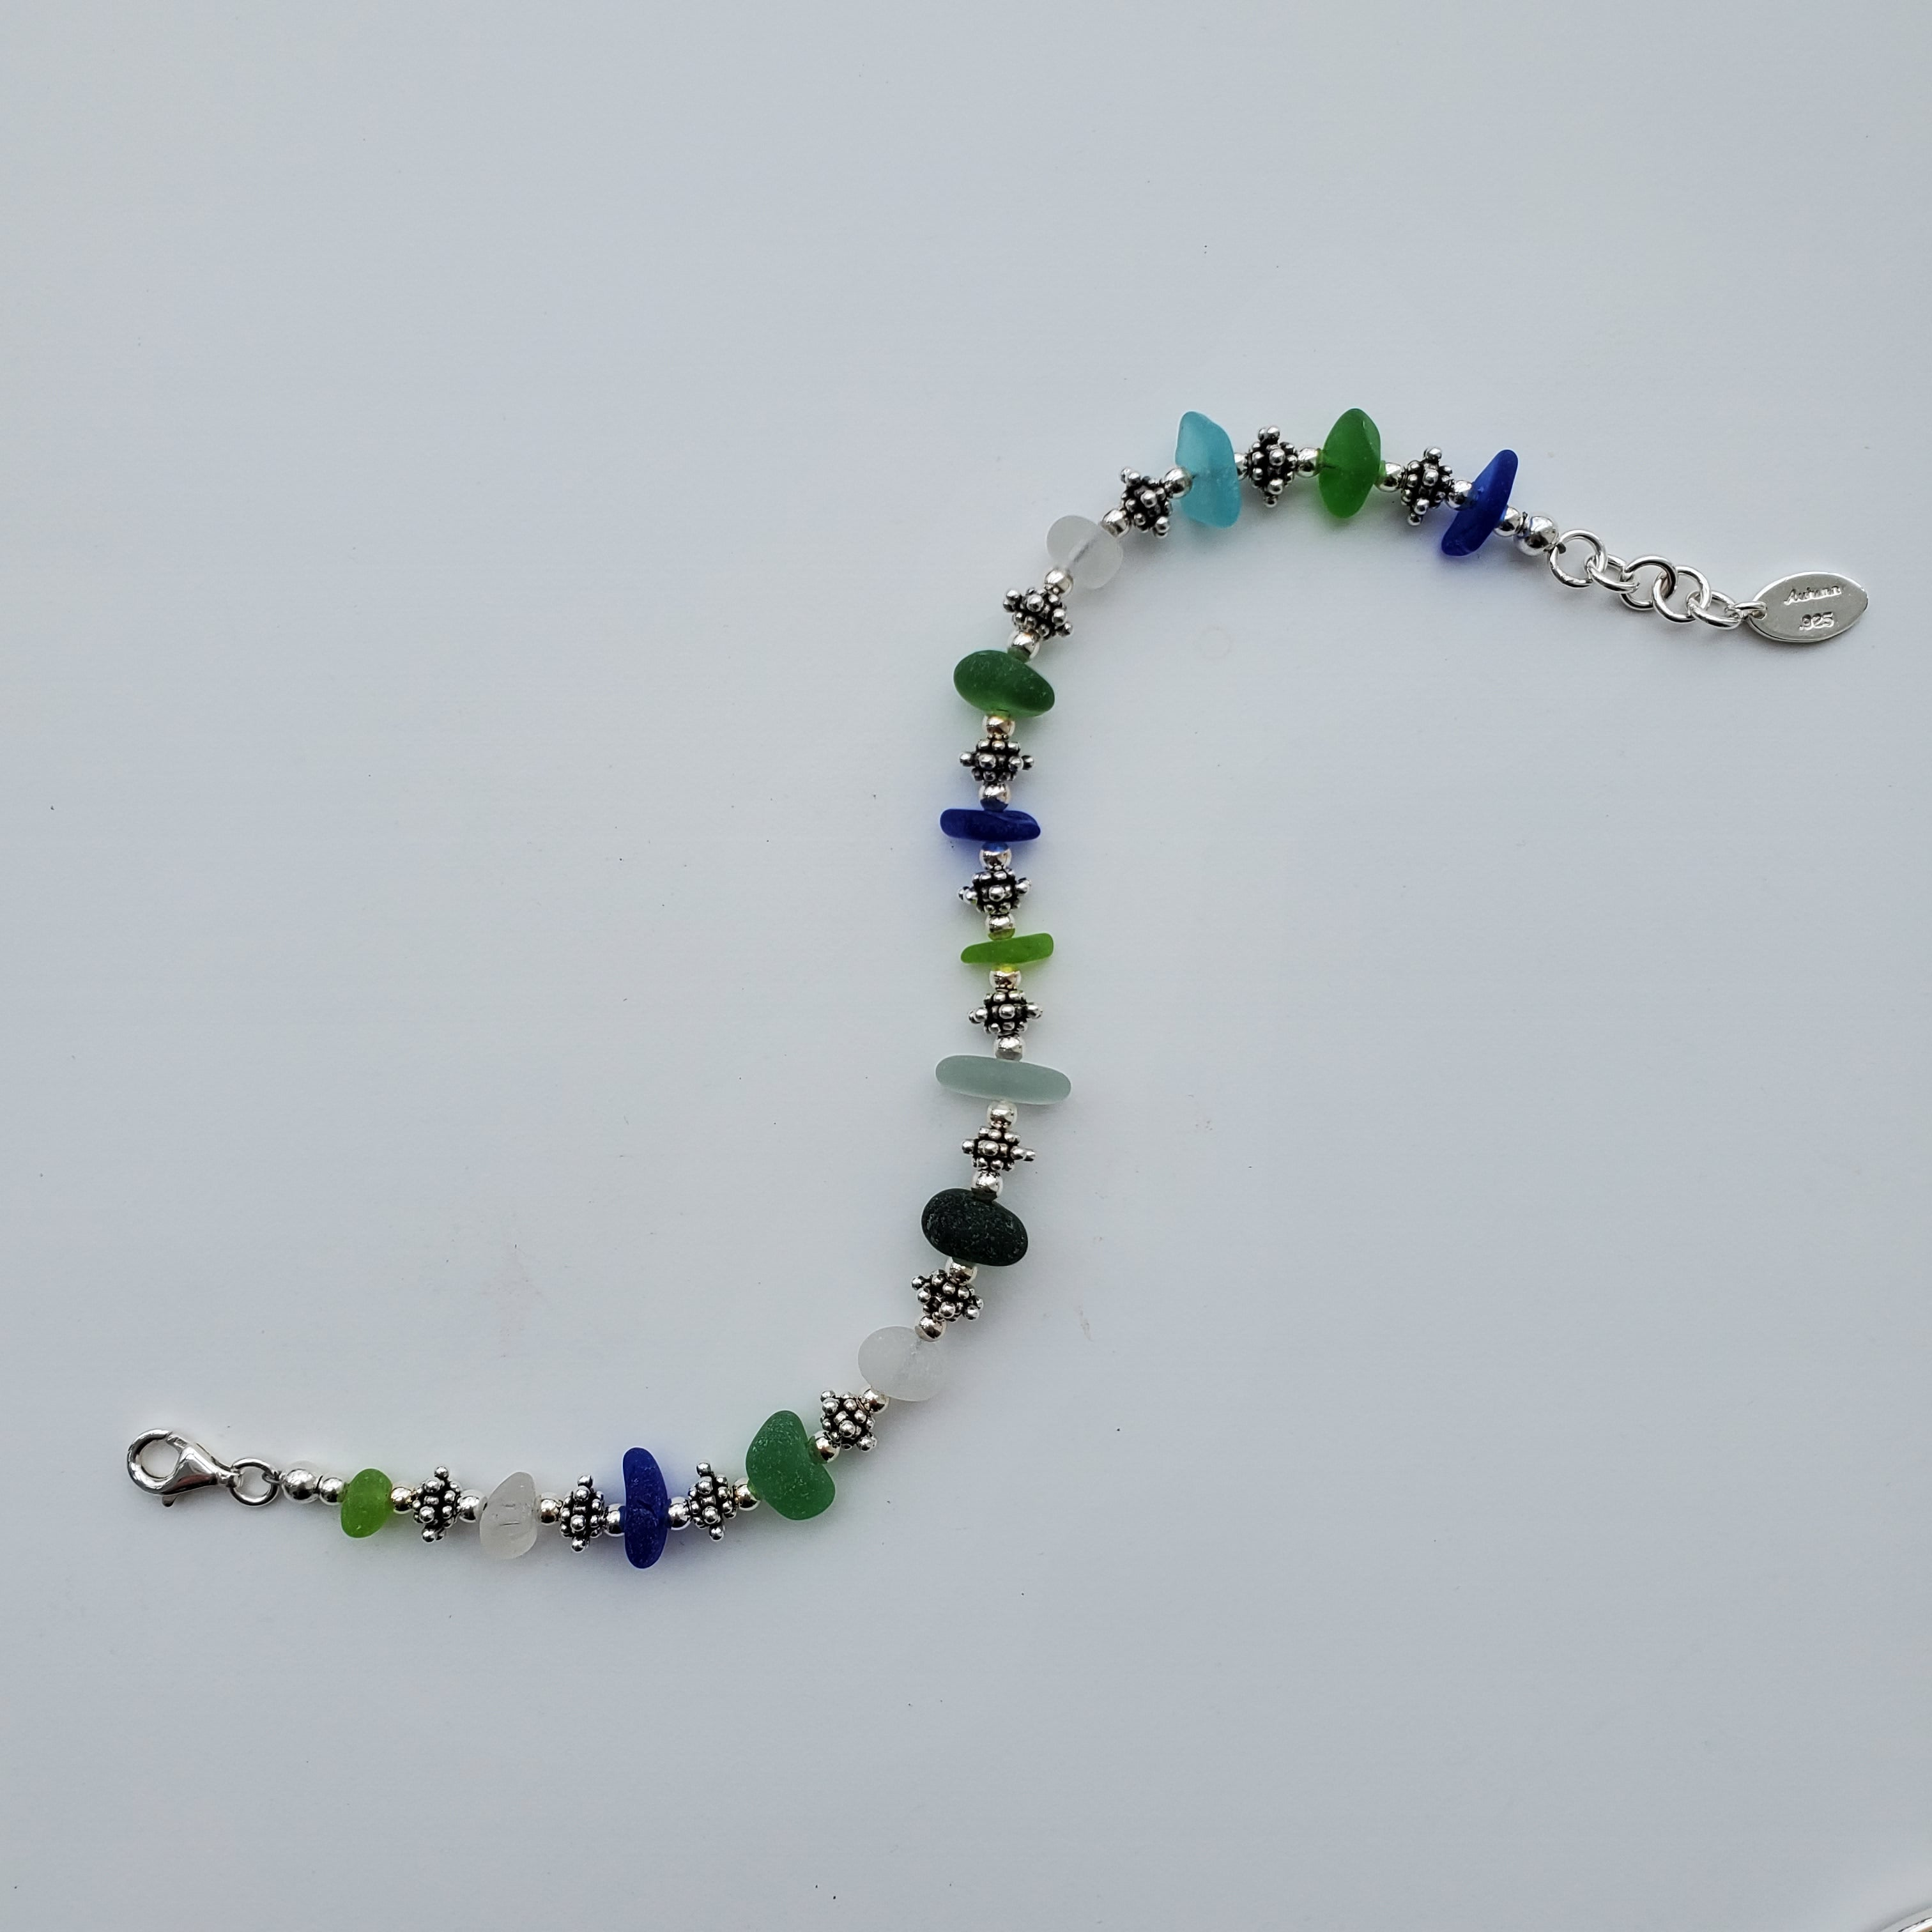 Seaglass with round and decorative sterling silver beaded bracelet displayed in unclasped S-curve.